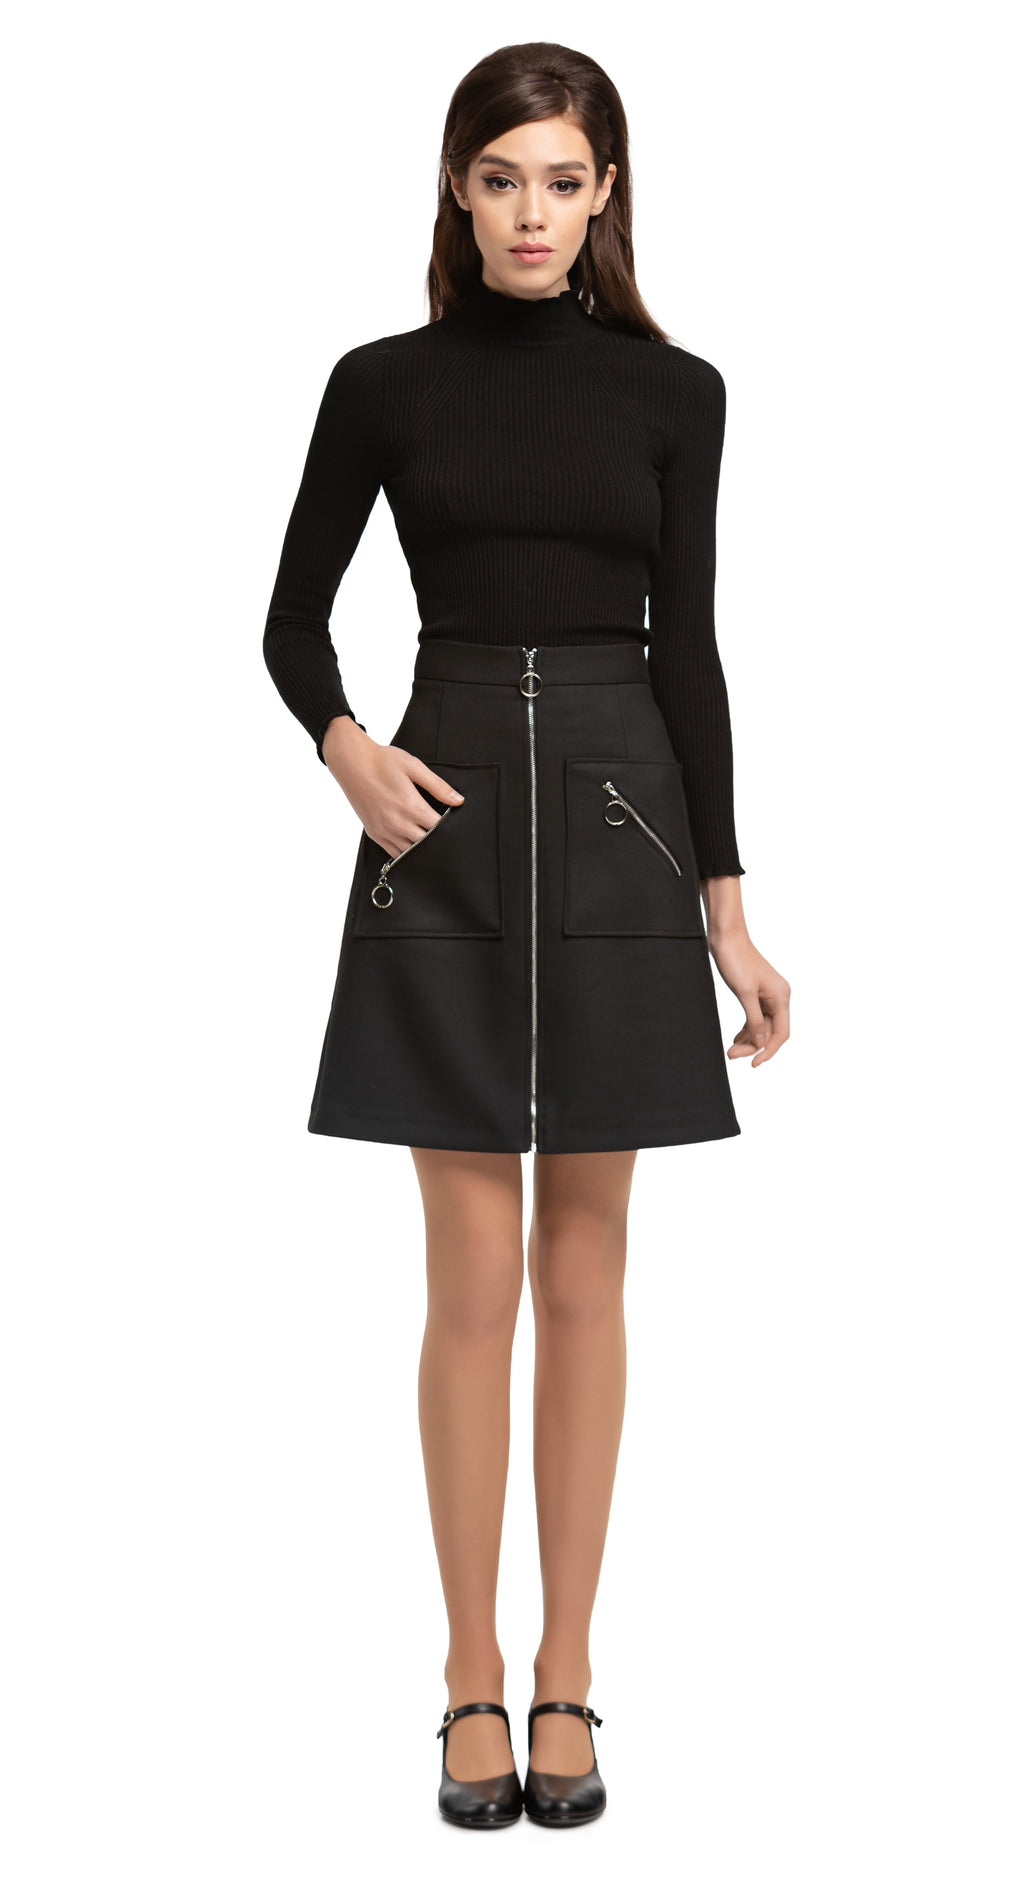 MARMALADE 1960s Style Black Skirt with Circle Zipper Pull